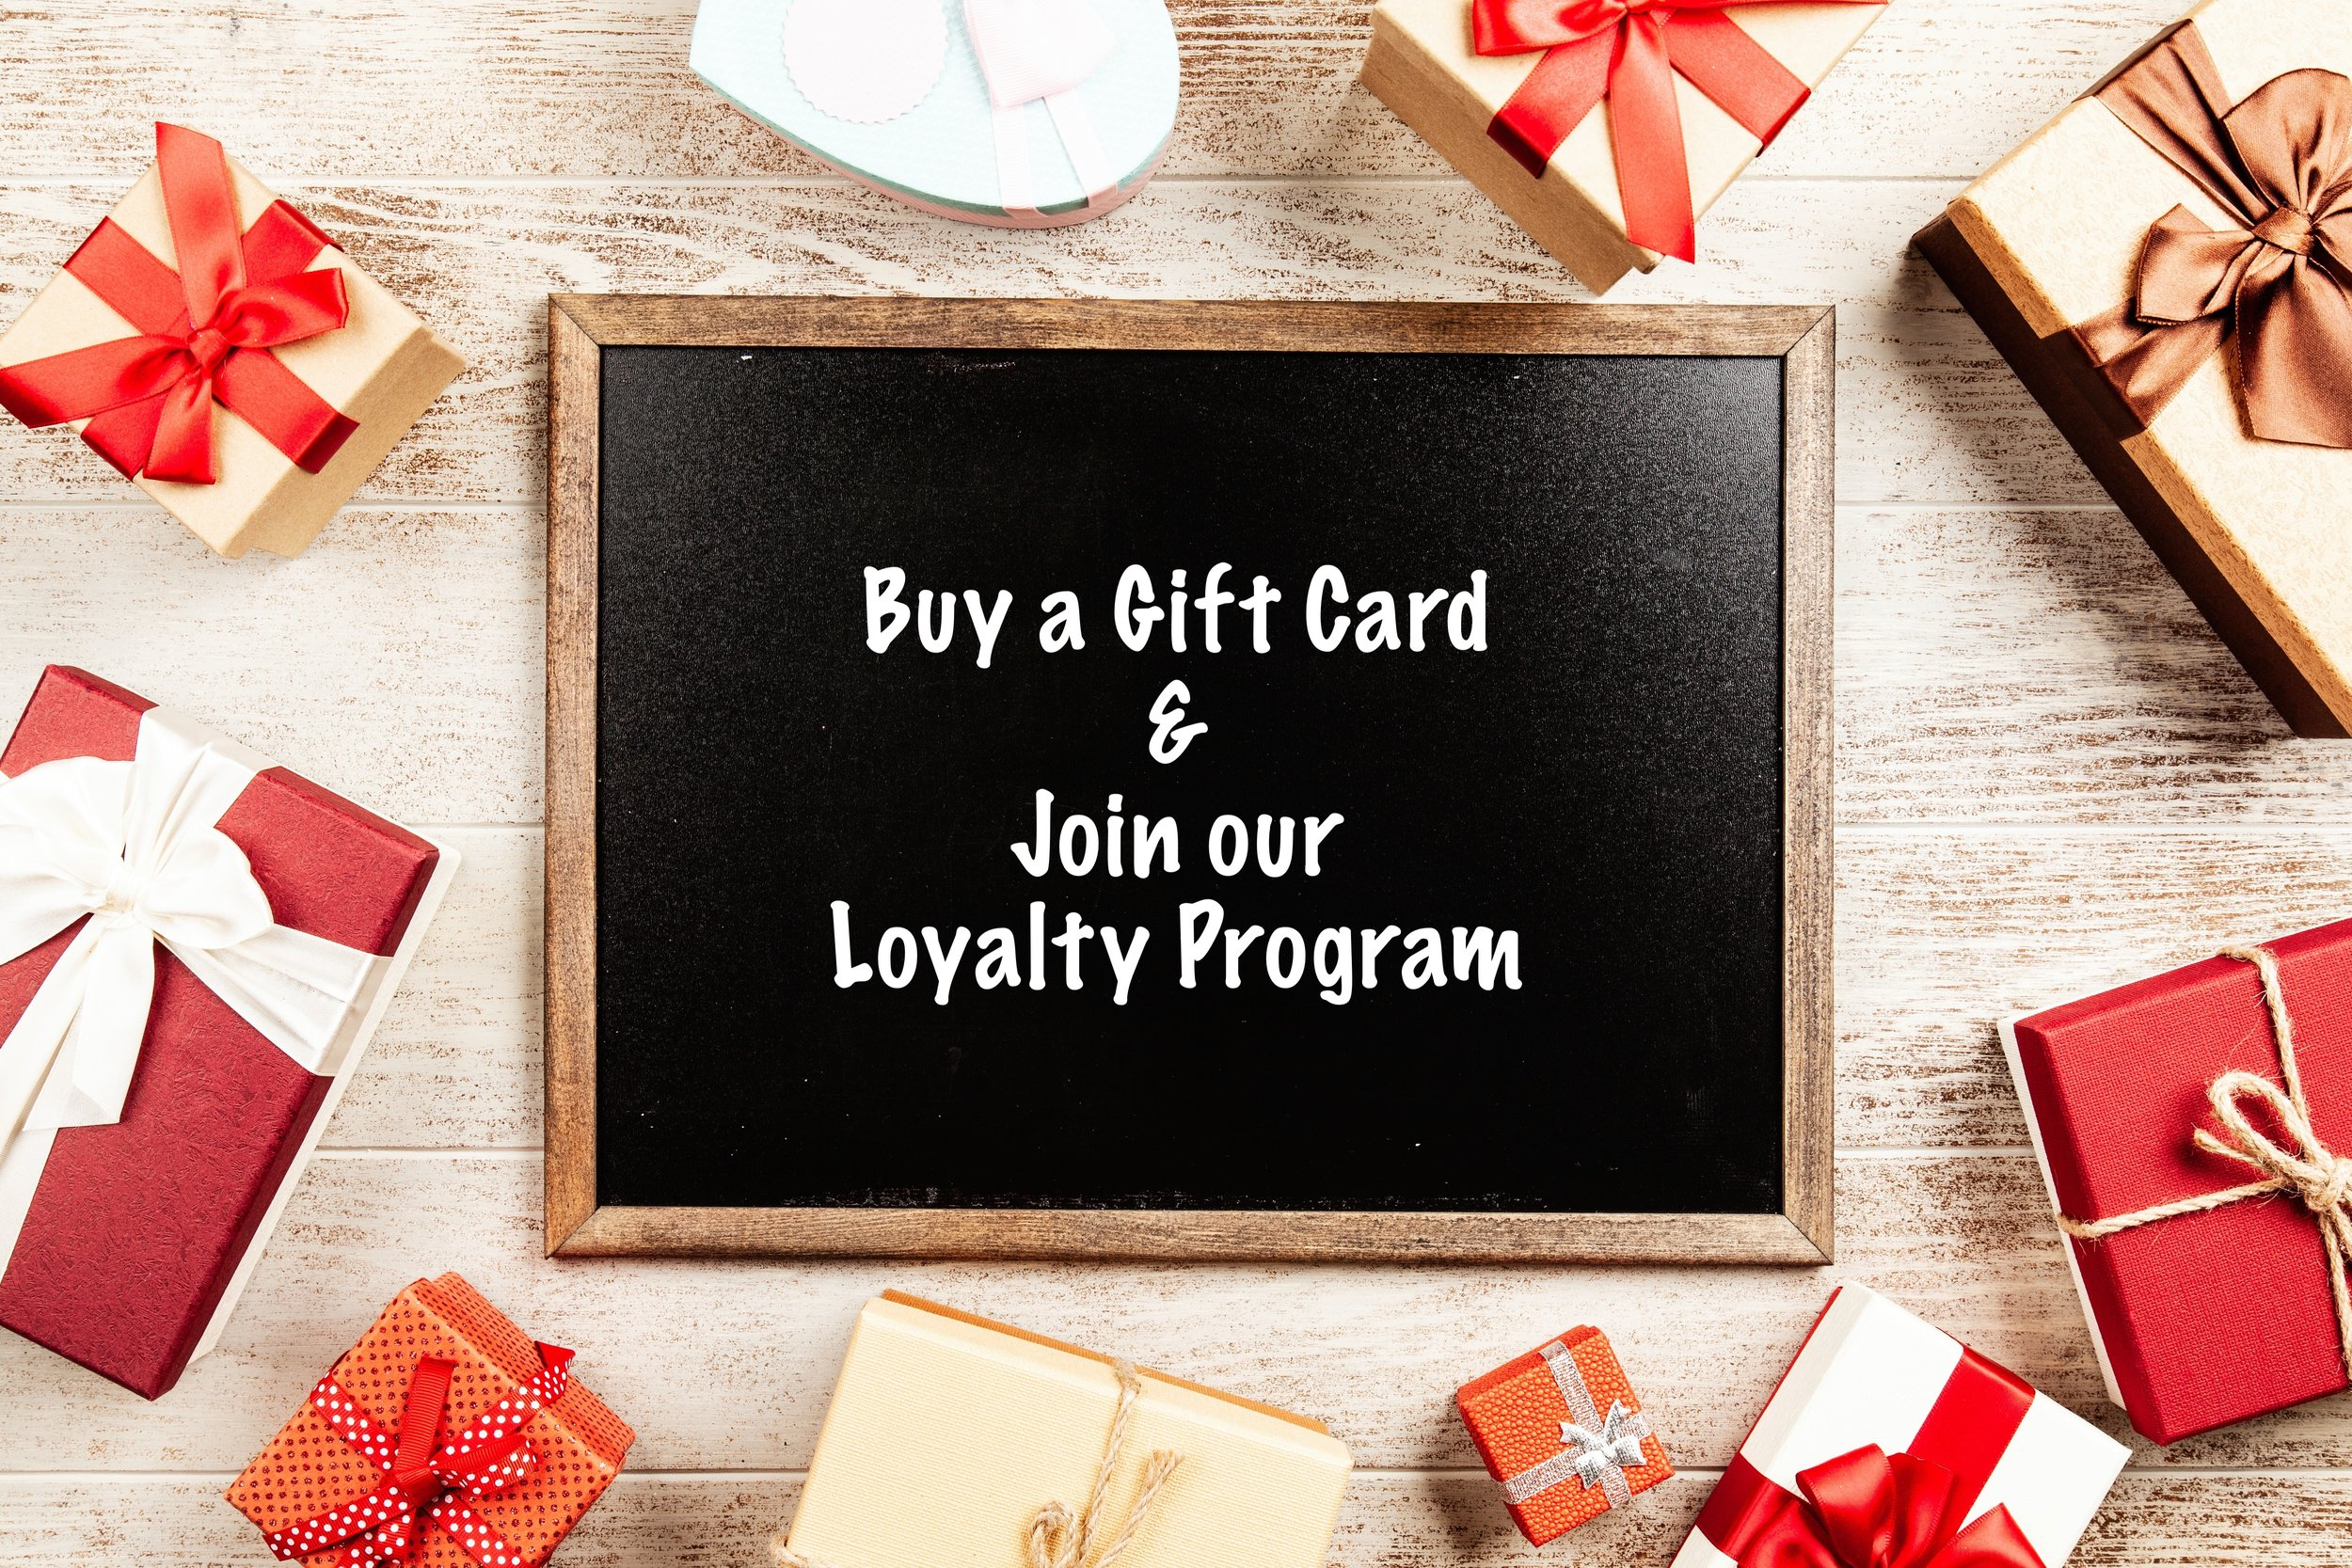 DIGITAL GIFT CARDS - ANY INCREMENT YOU WANT! REDEEM ONLINE!